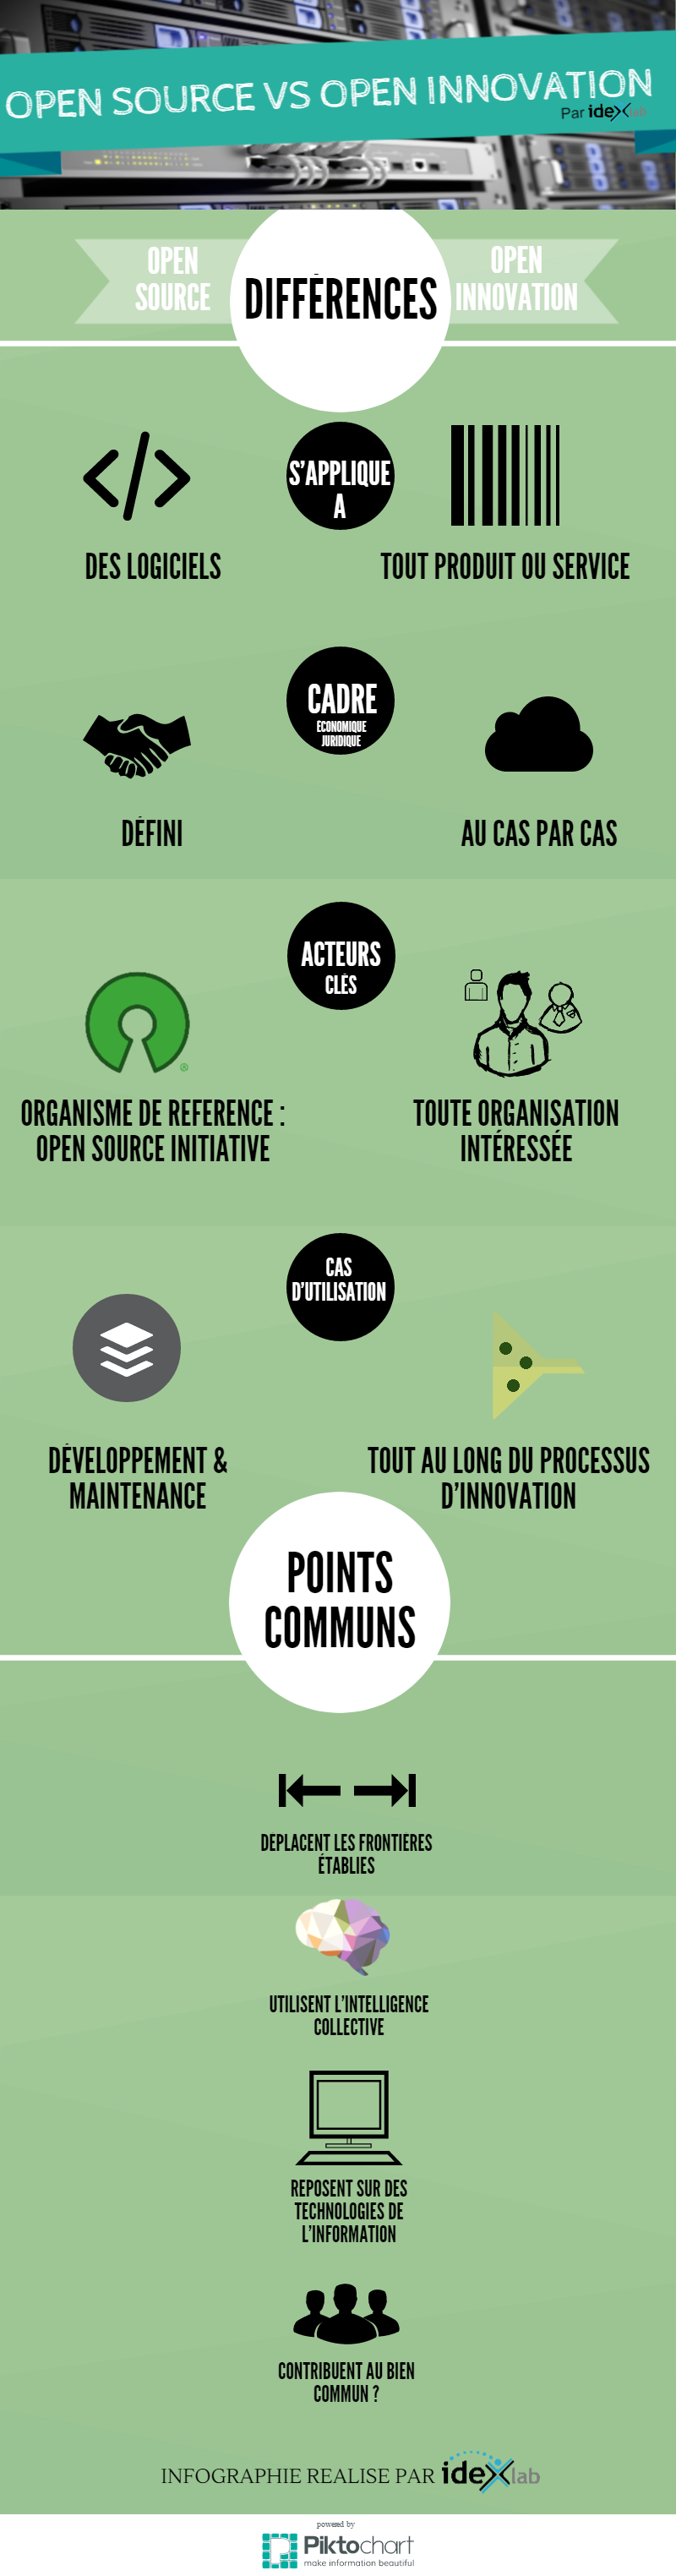 open source vs open innovation idexlab infographie